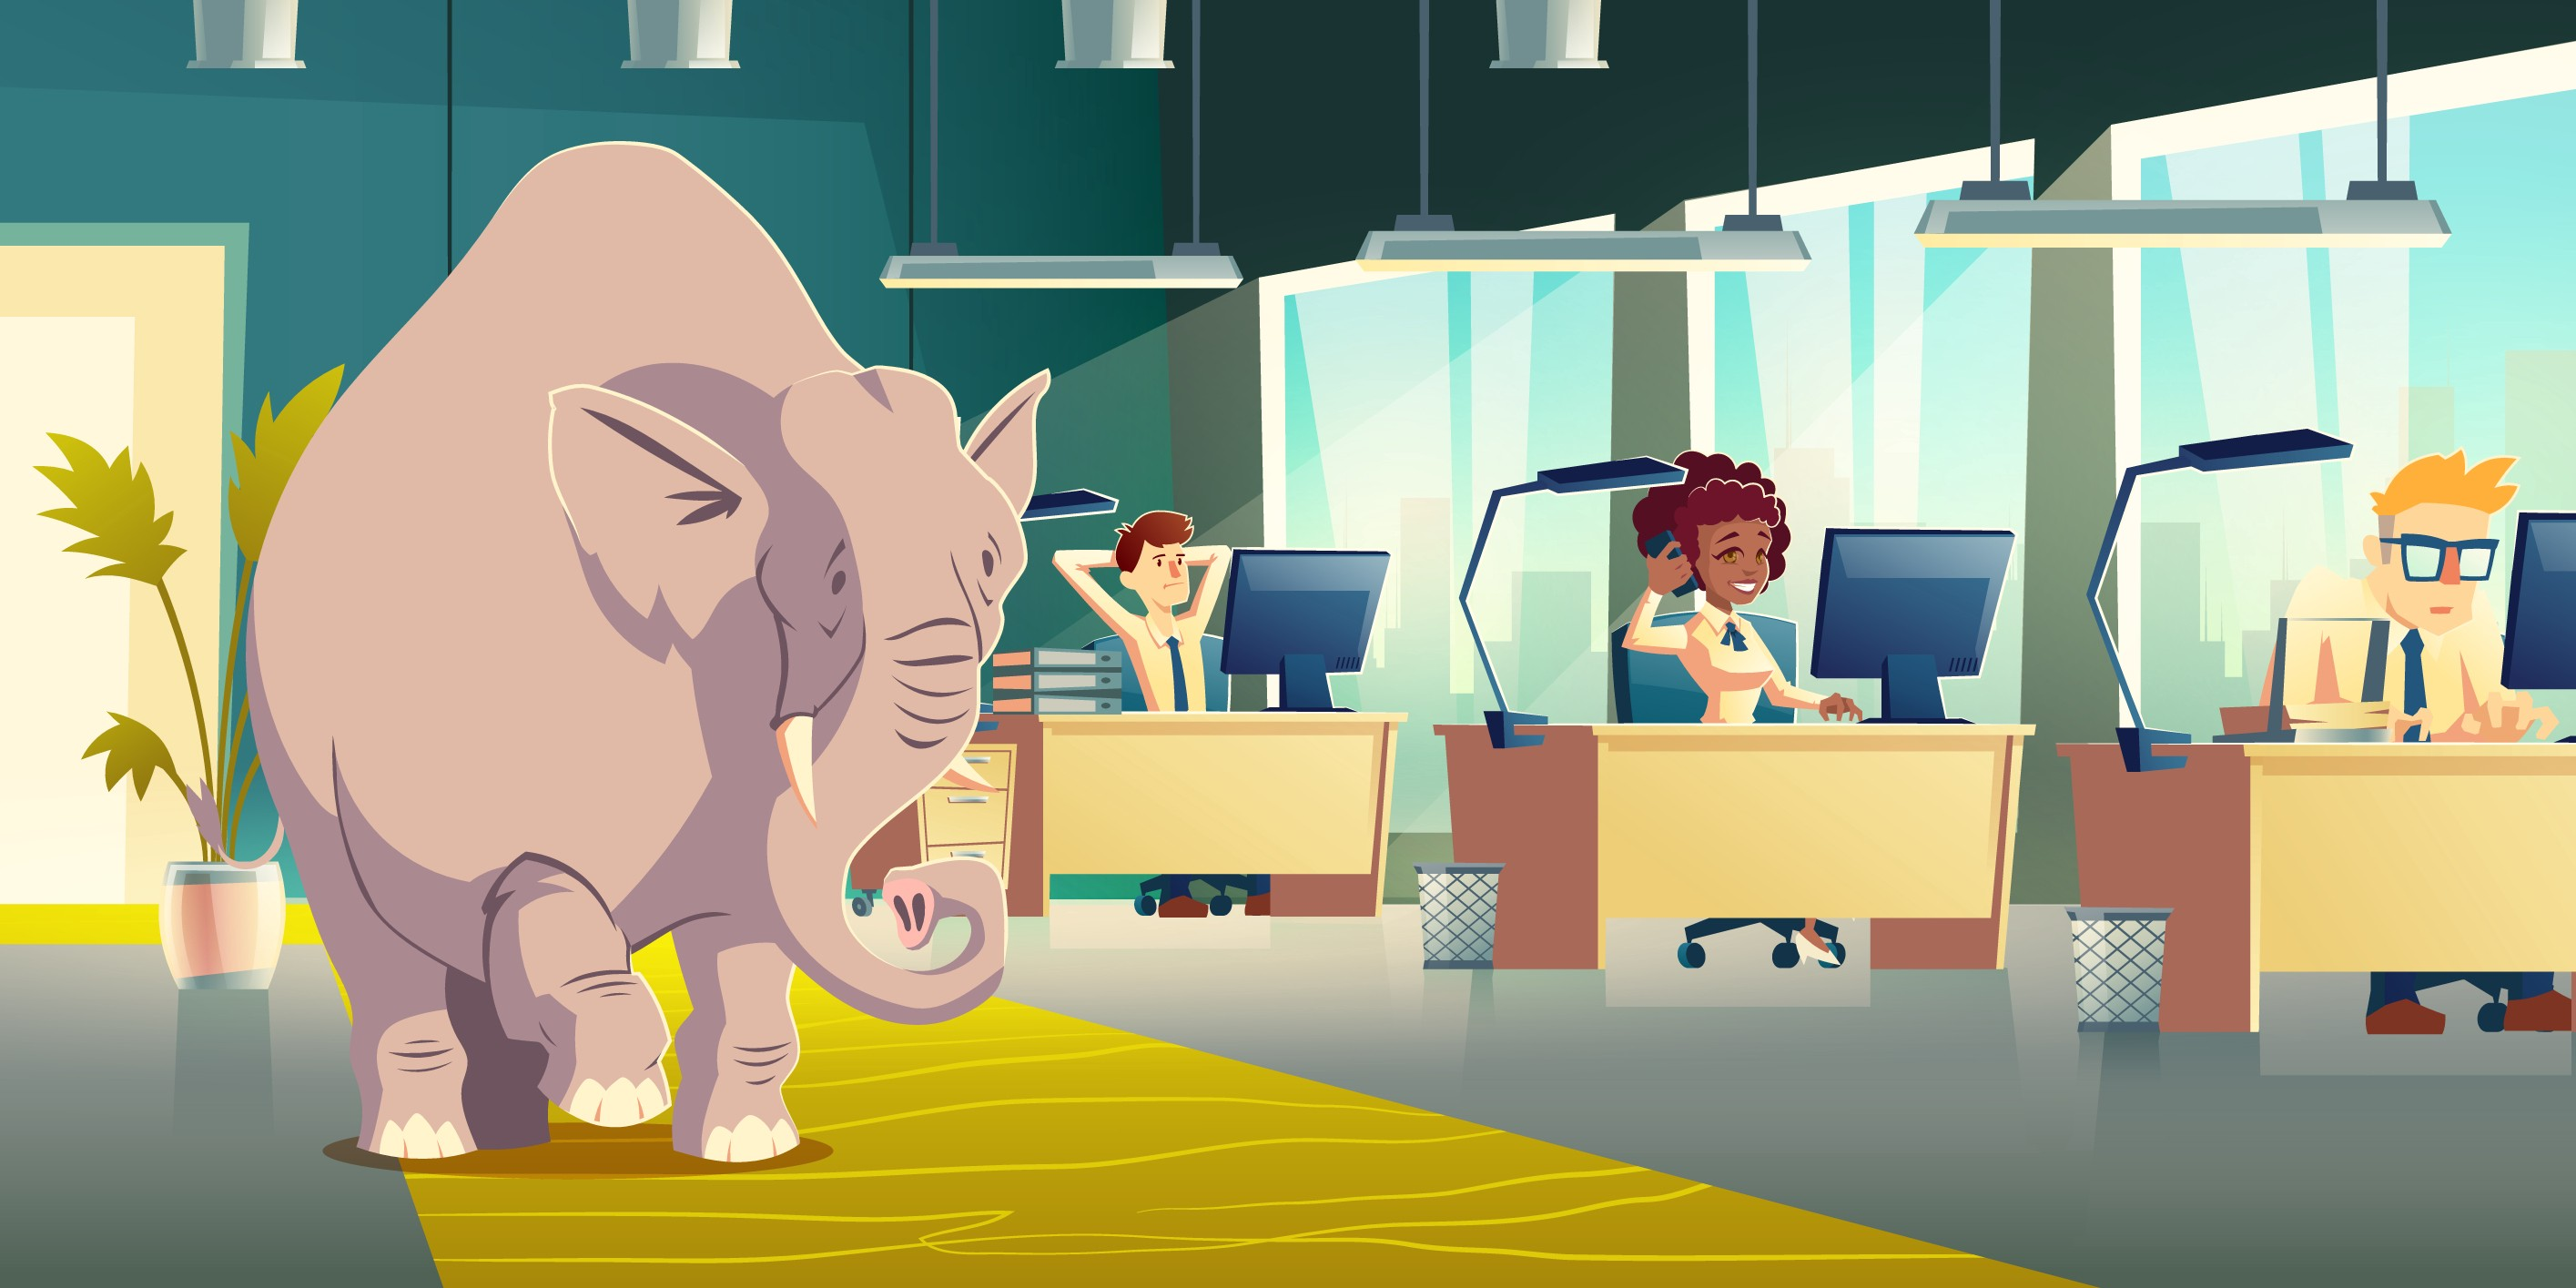 Everyone in the office is ignoring the elephant in the room.